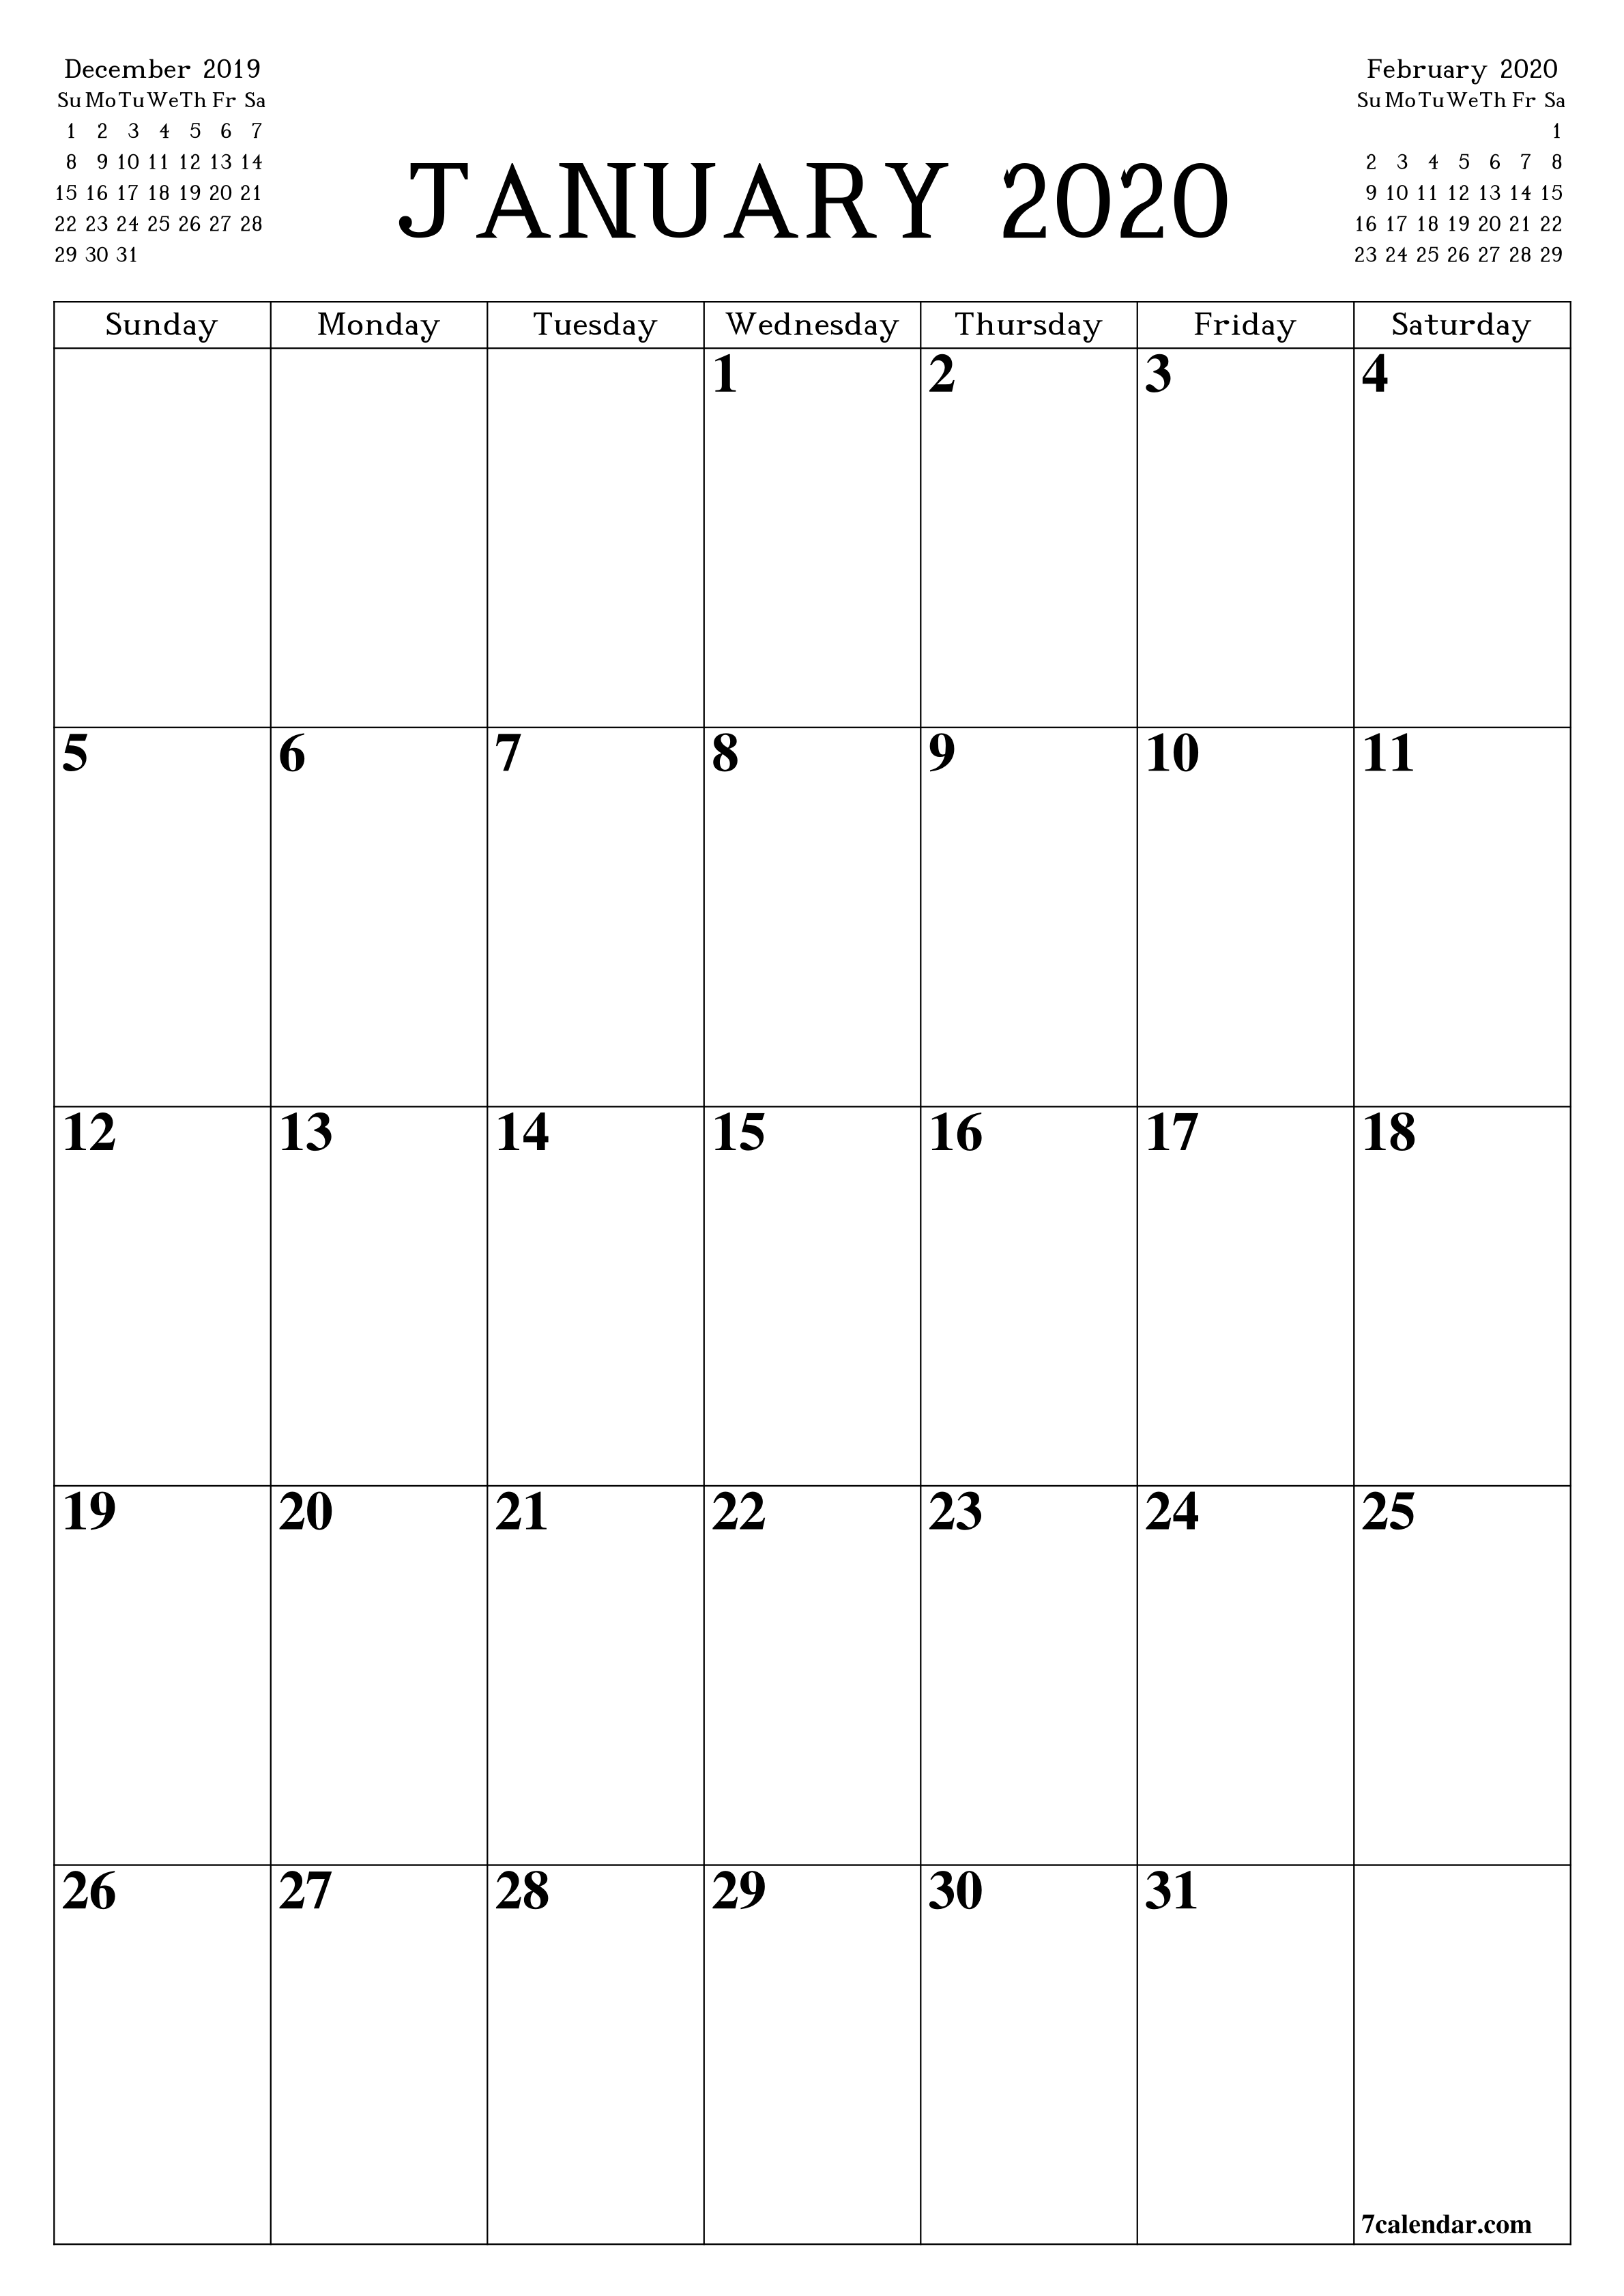 Printable Blank Calendar Planner A4 A5 And A3 Pdf And Png January 2020 7calendar Com In 2020 Blank Monthly Calendar Printable Blank Calendar Calendar Printables